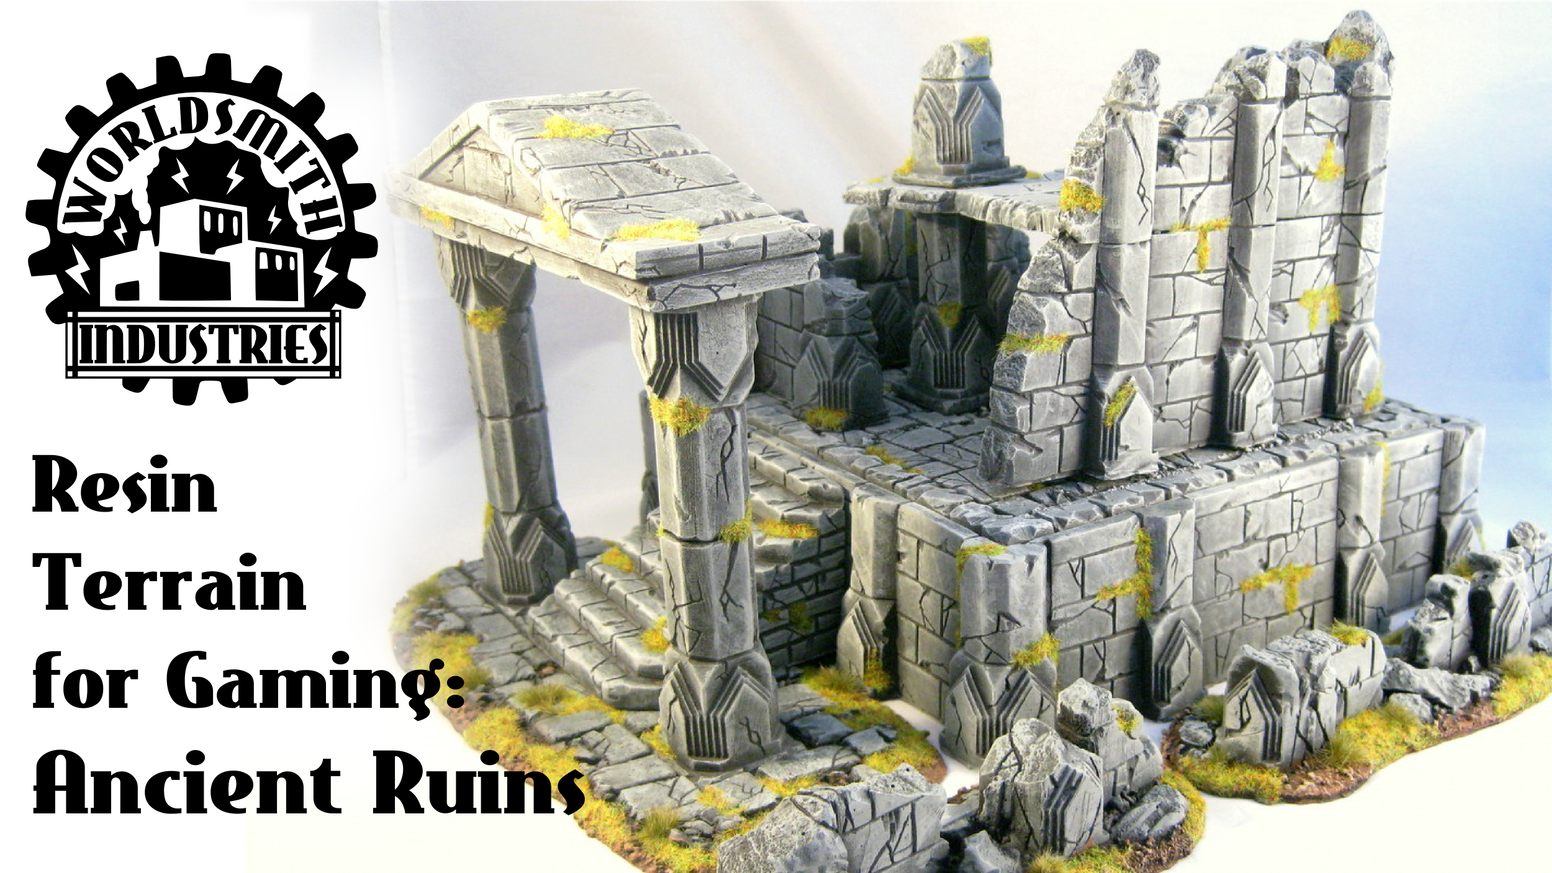 Resin Wargaming Scenery and Terrain: Ancient Ruins by